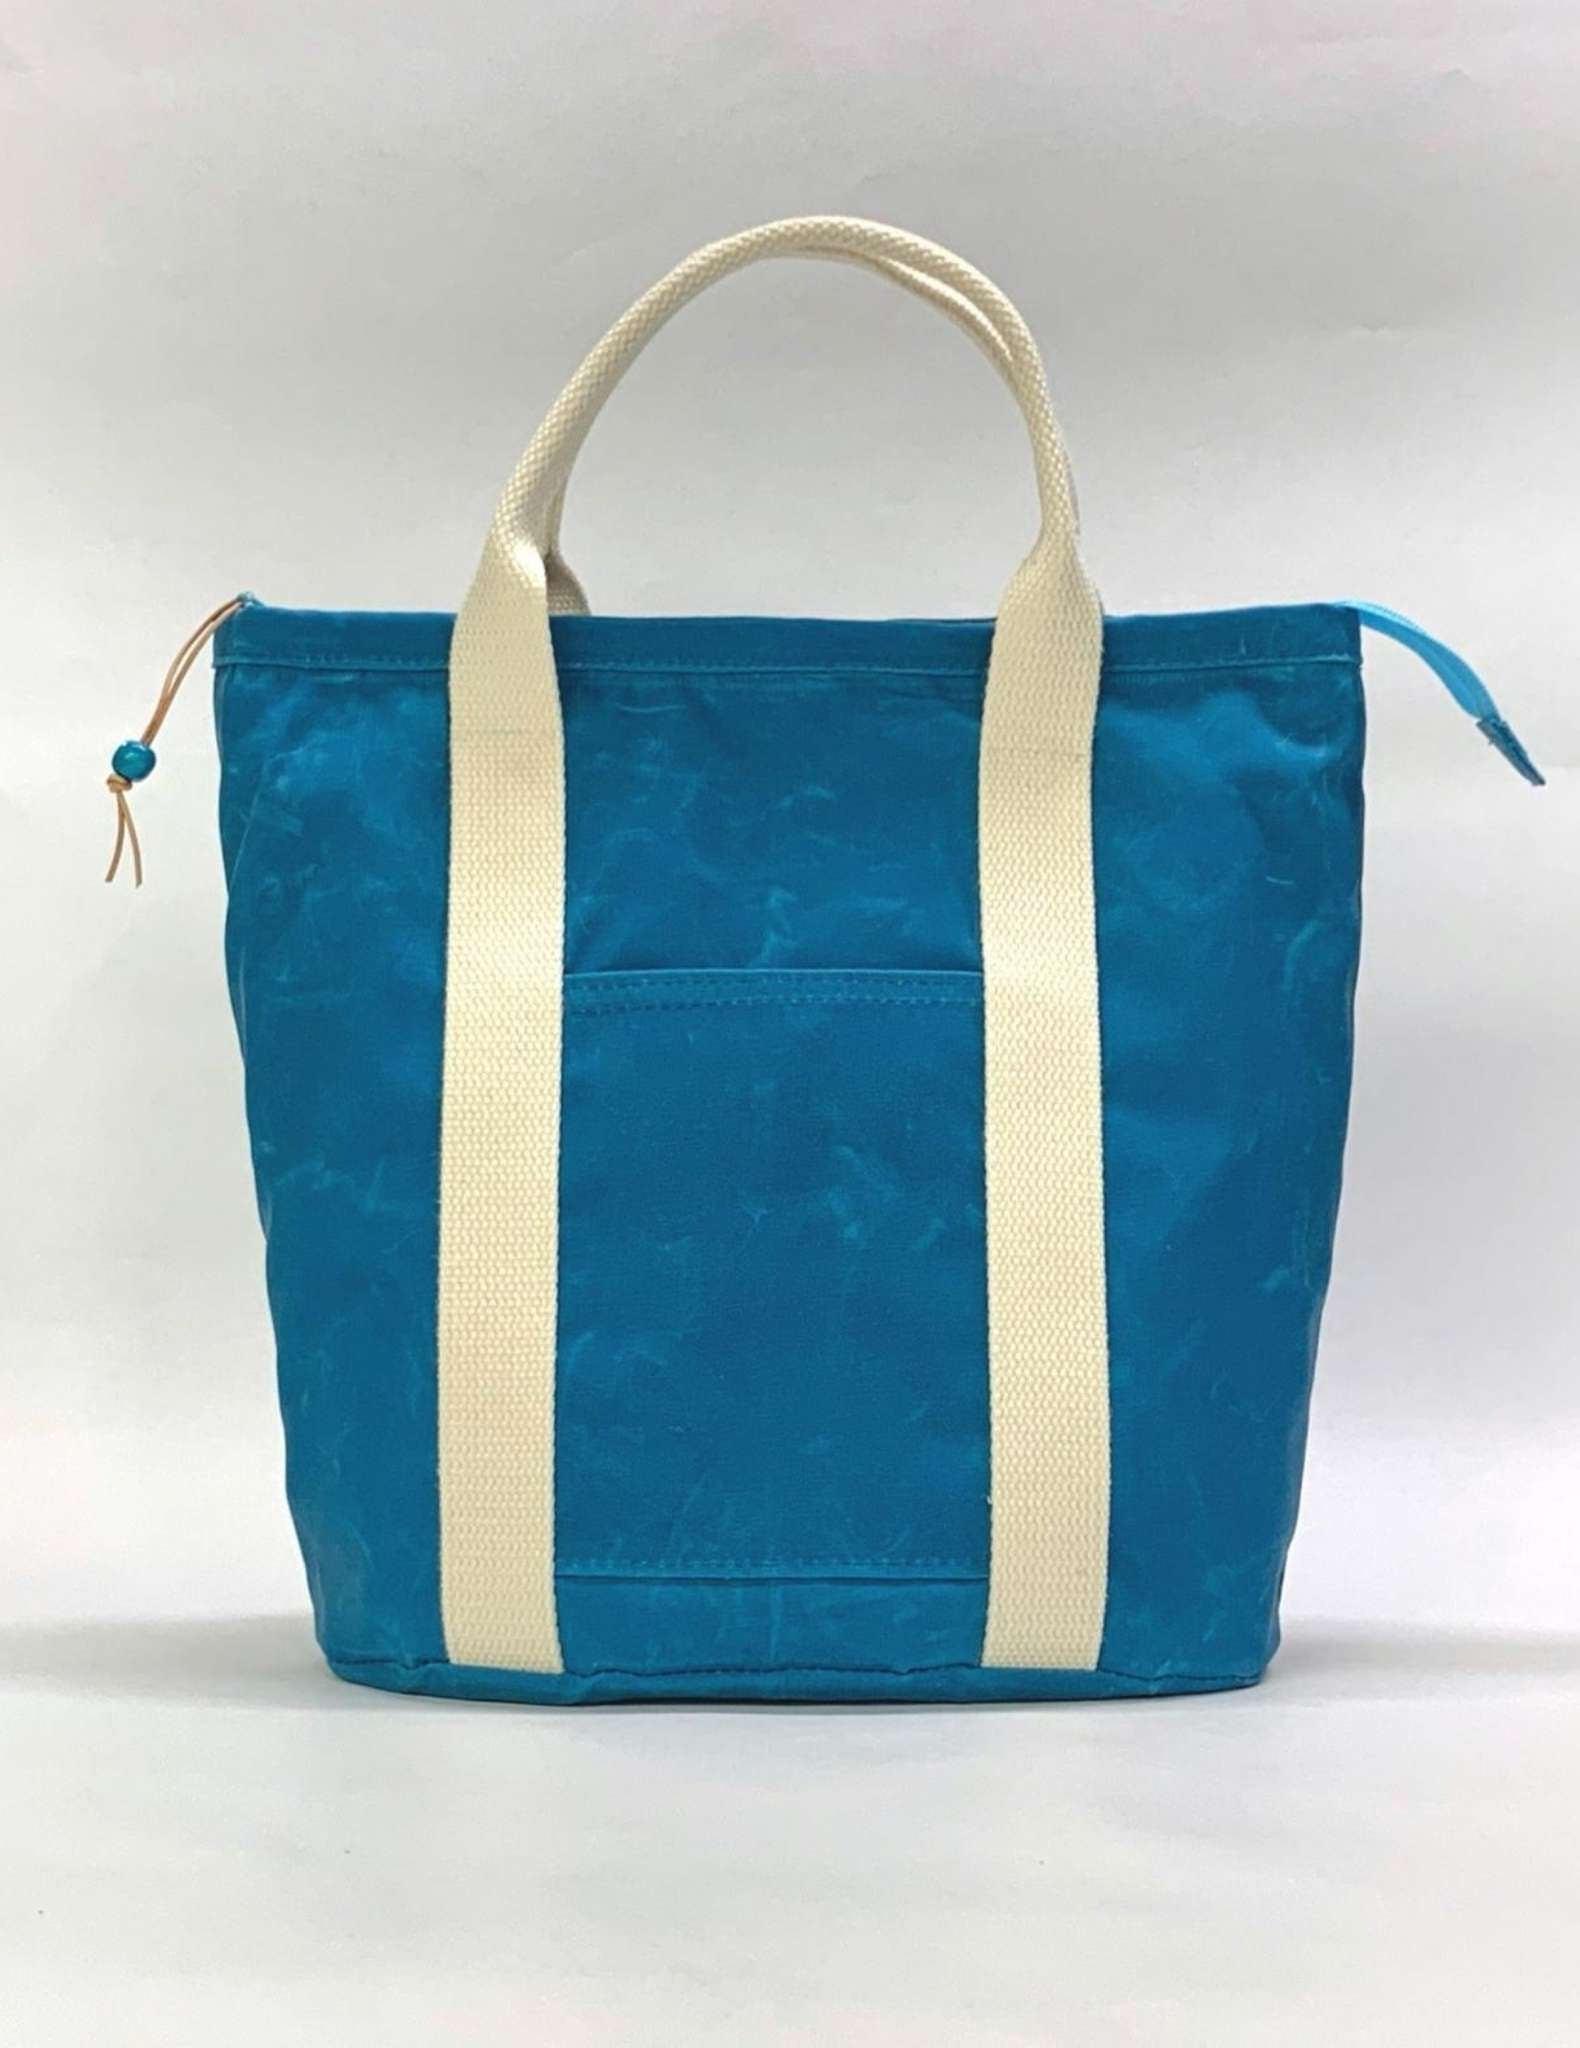 A blue and white waxed canvas knitting bag